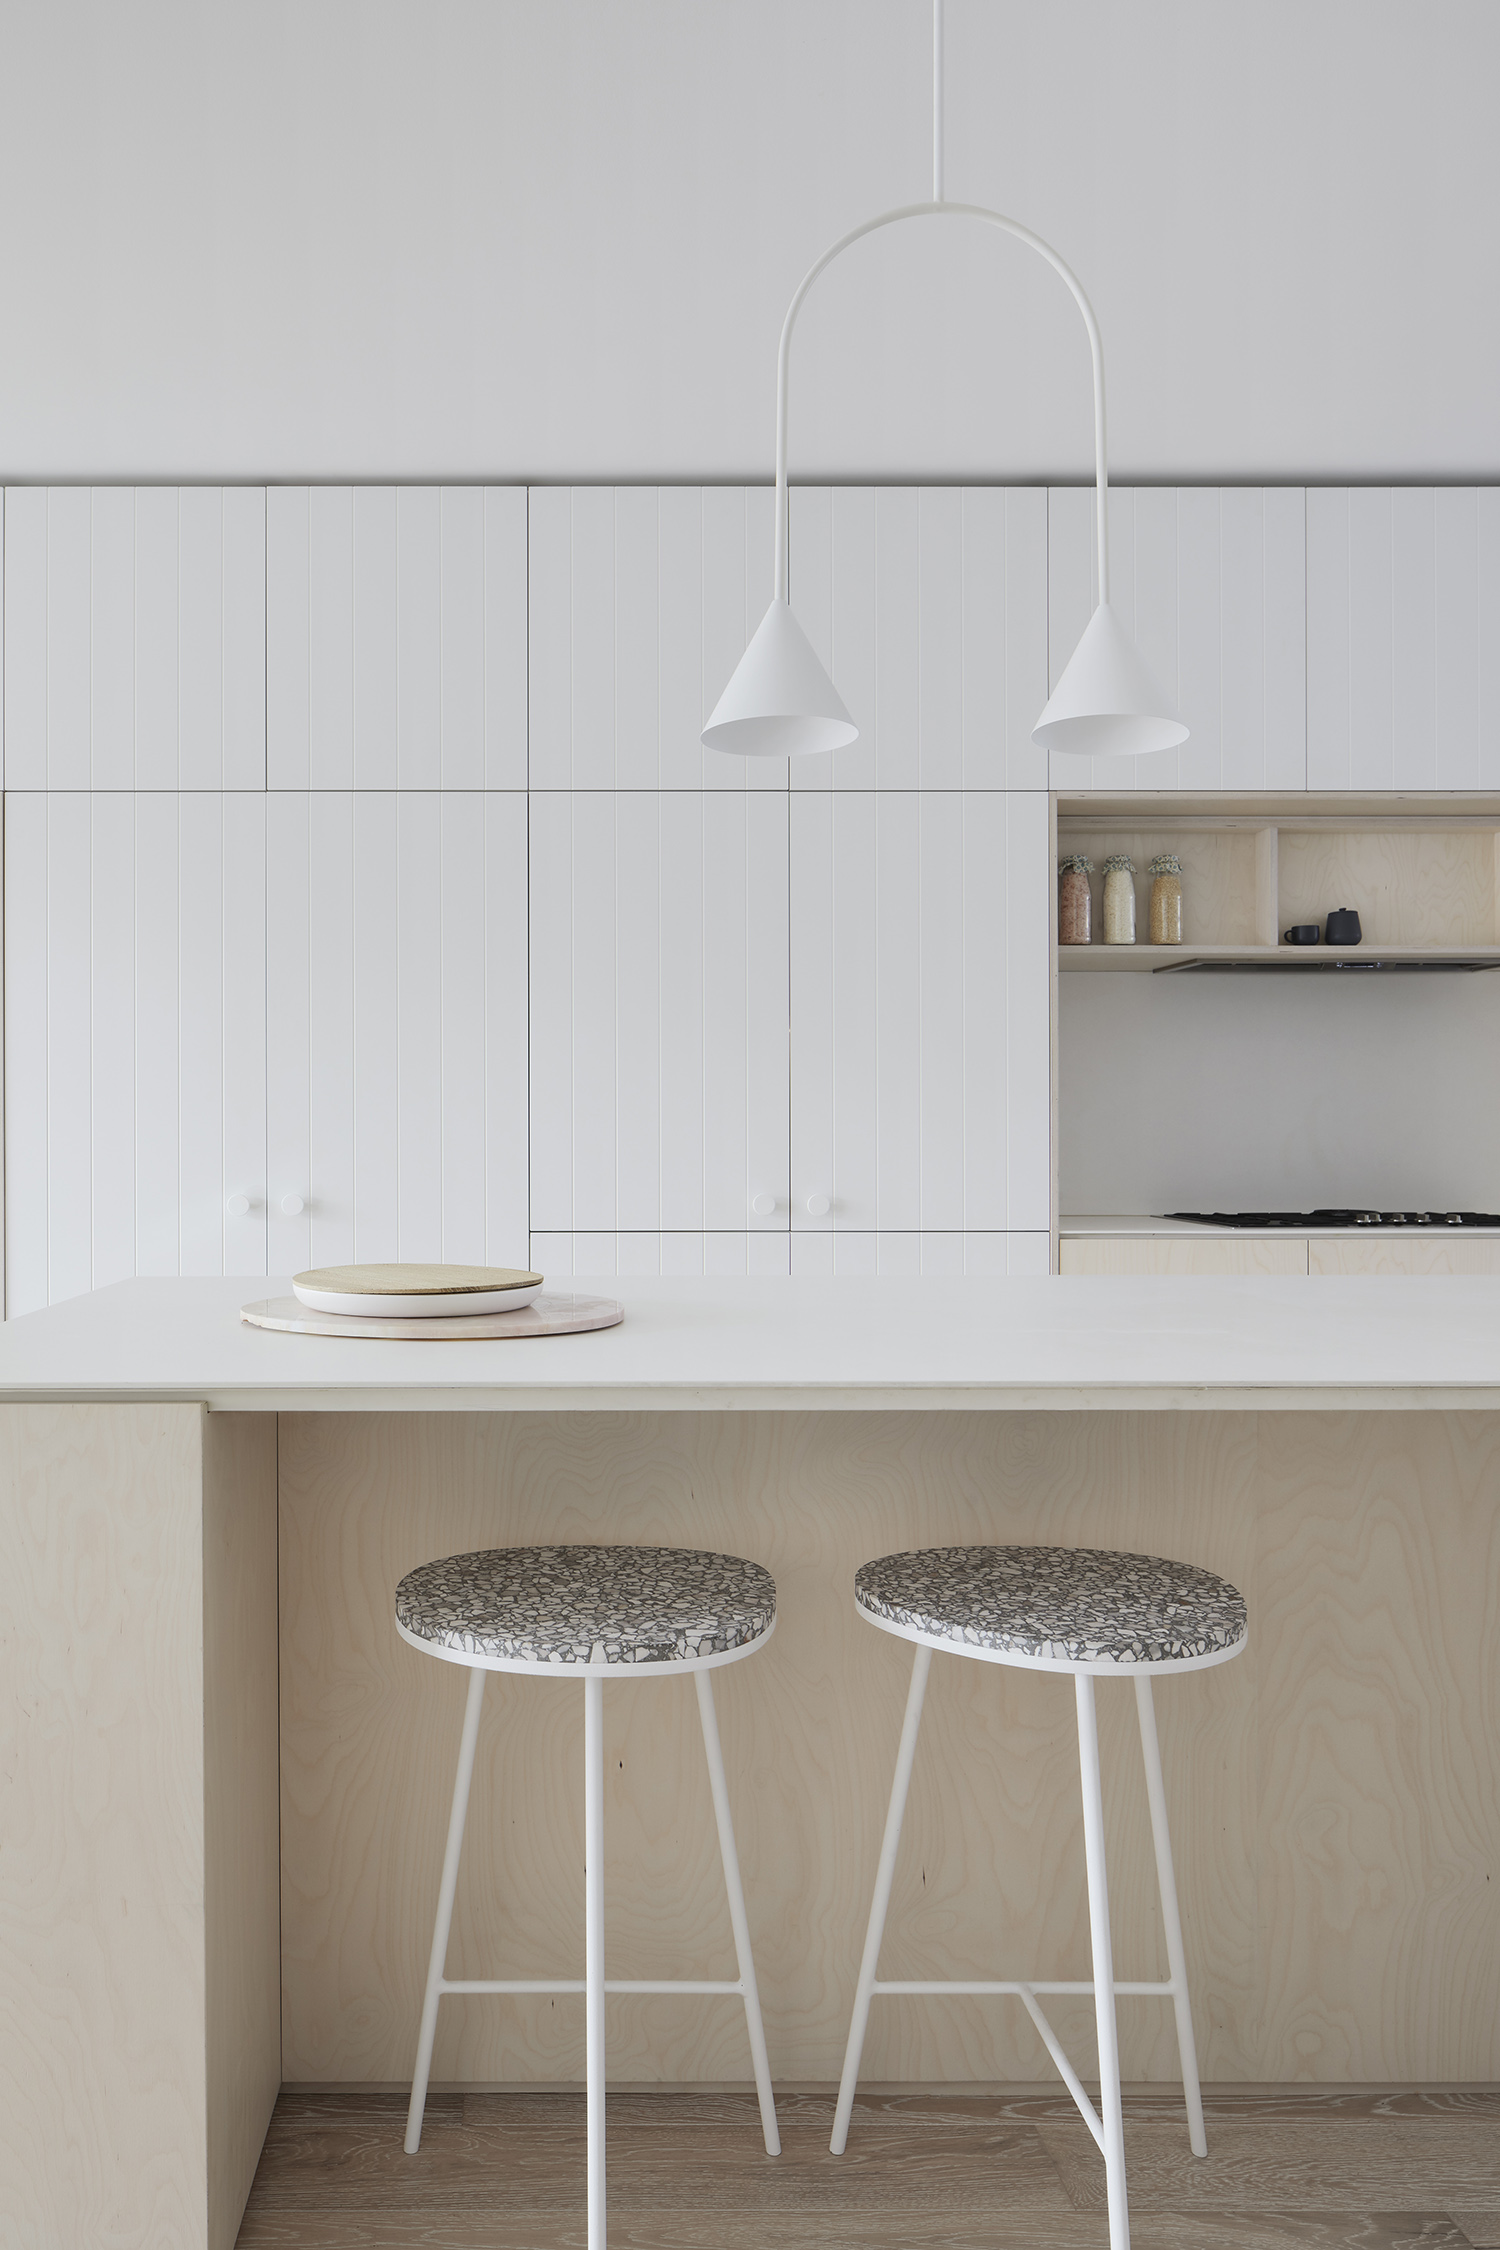 NORTHBOURNE_perfpad_kitchen a.jpg